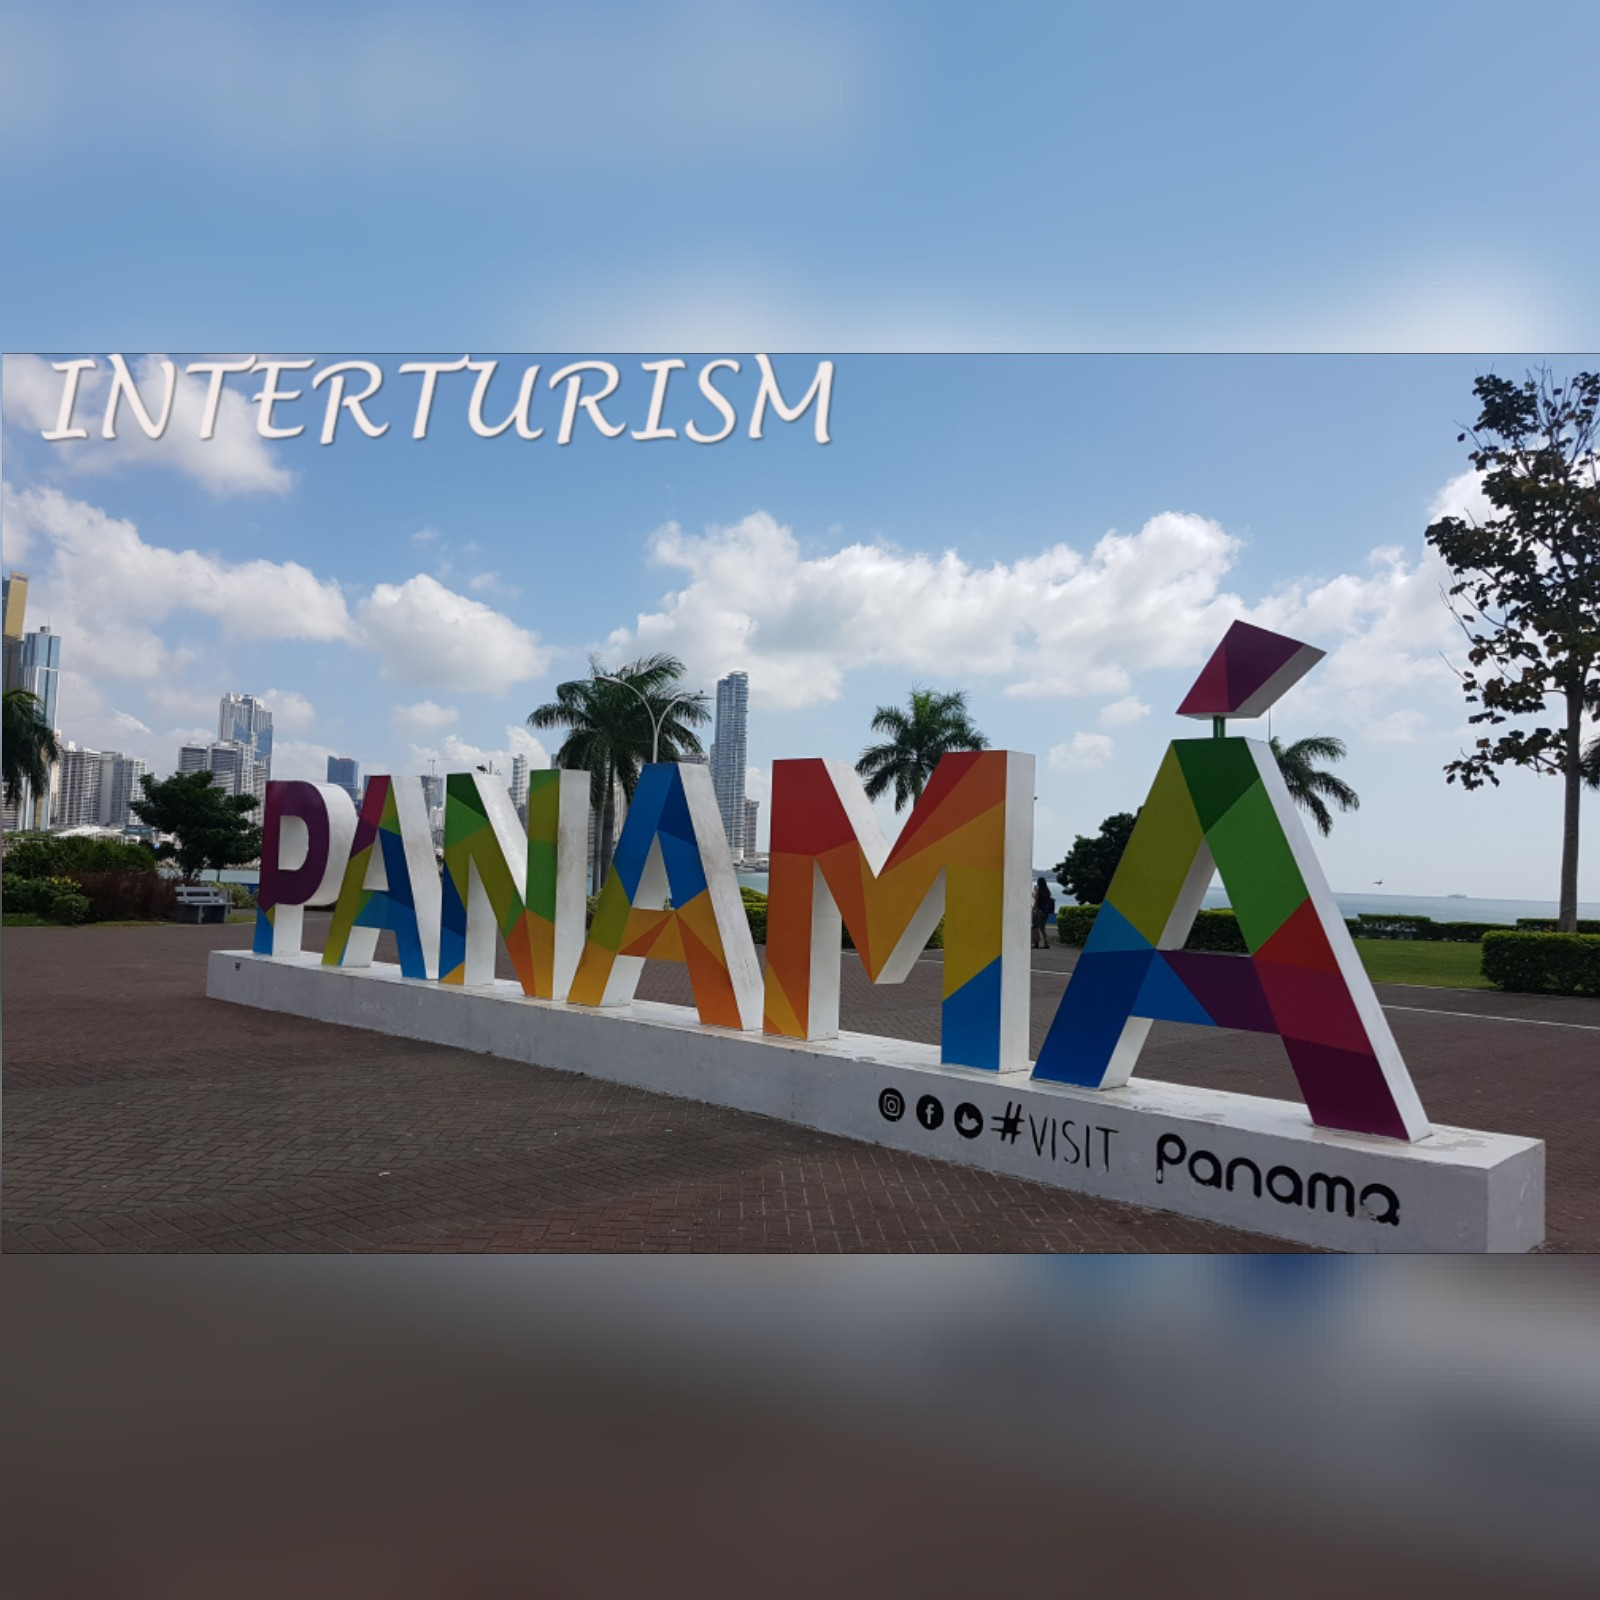 INTERTURISM PANAMA